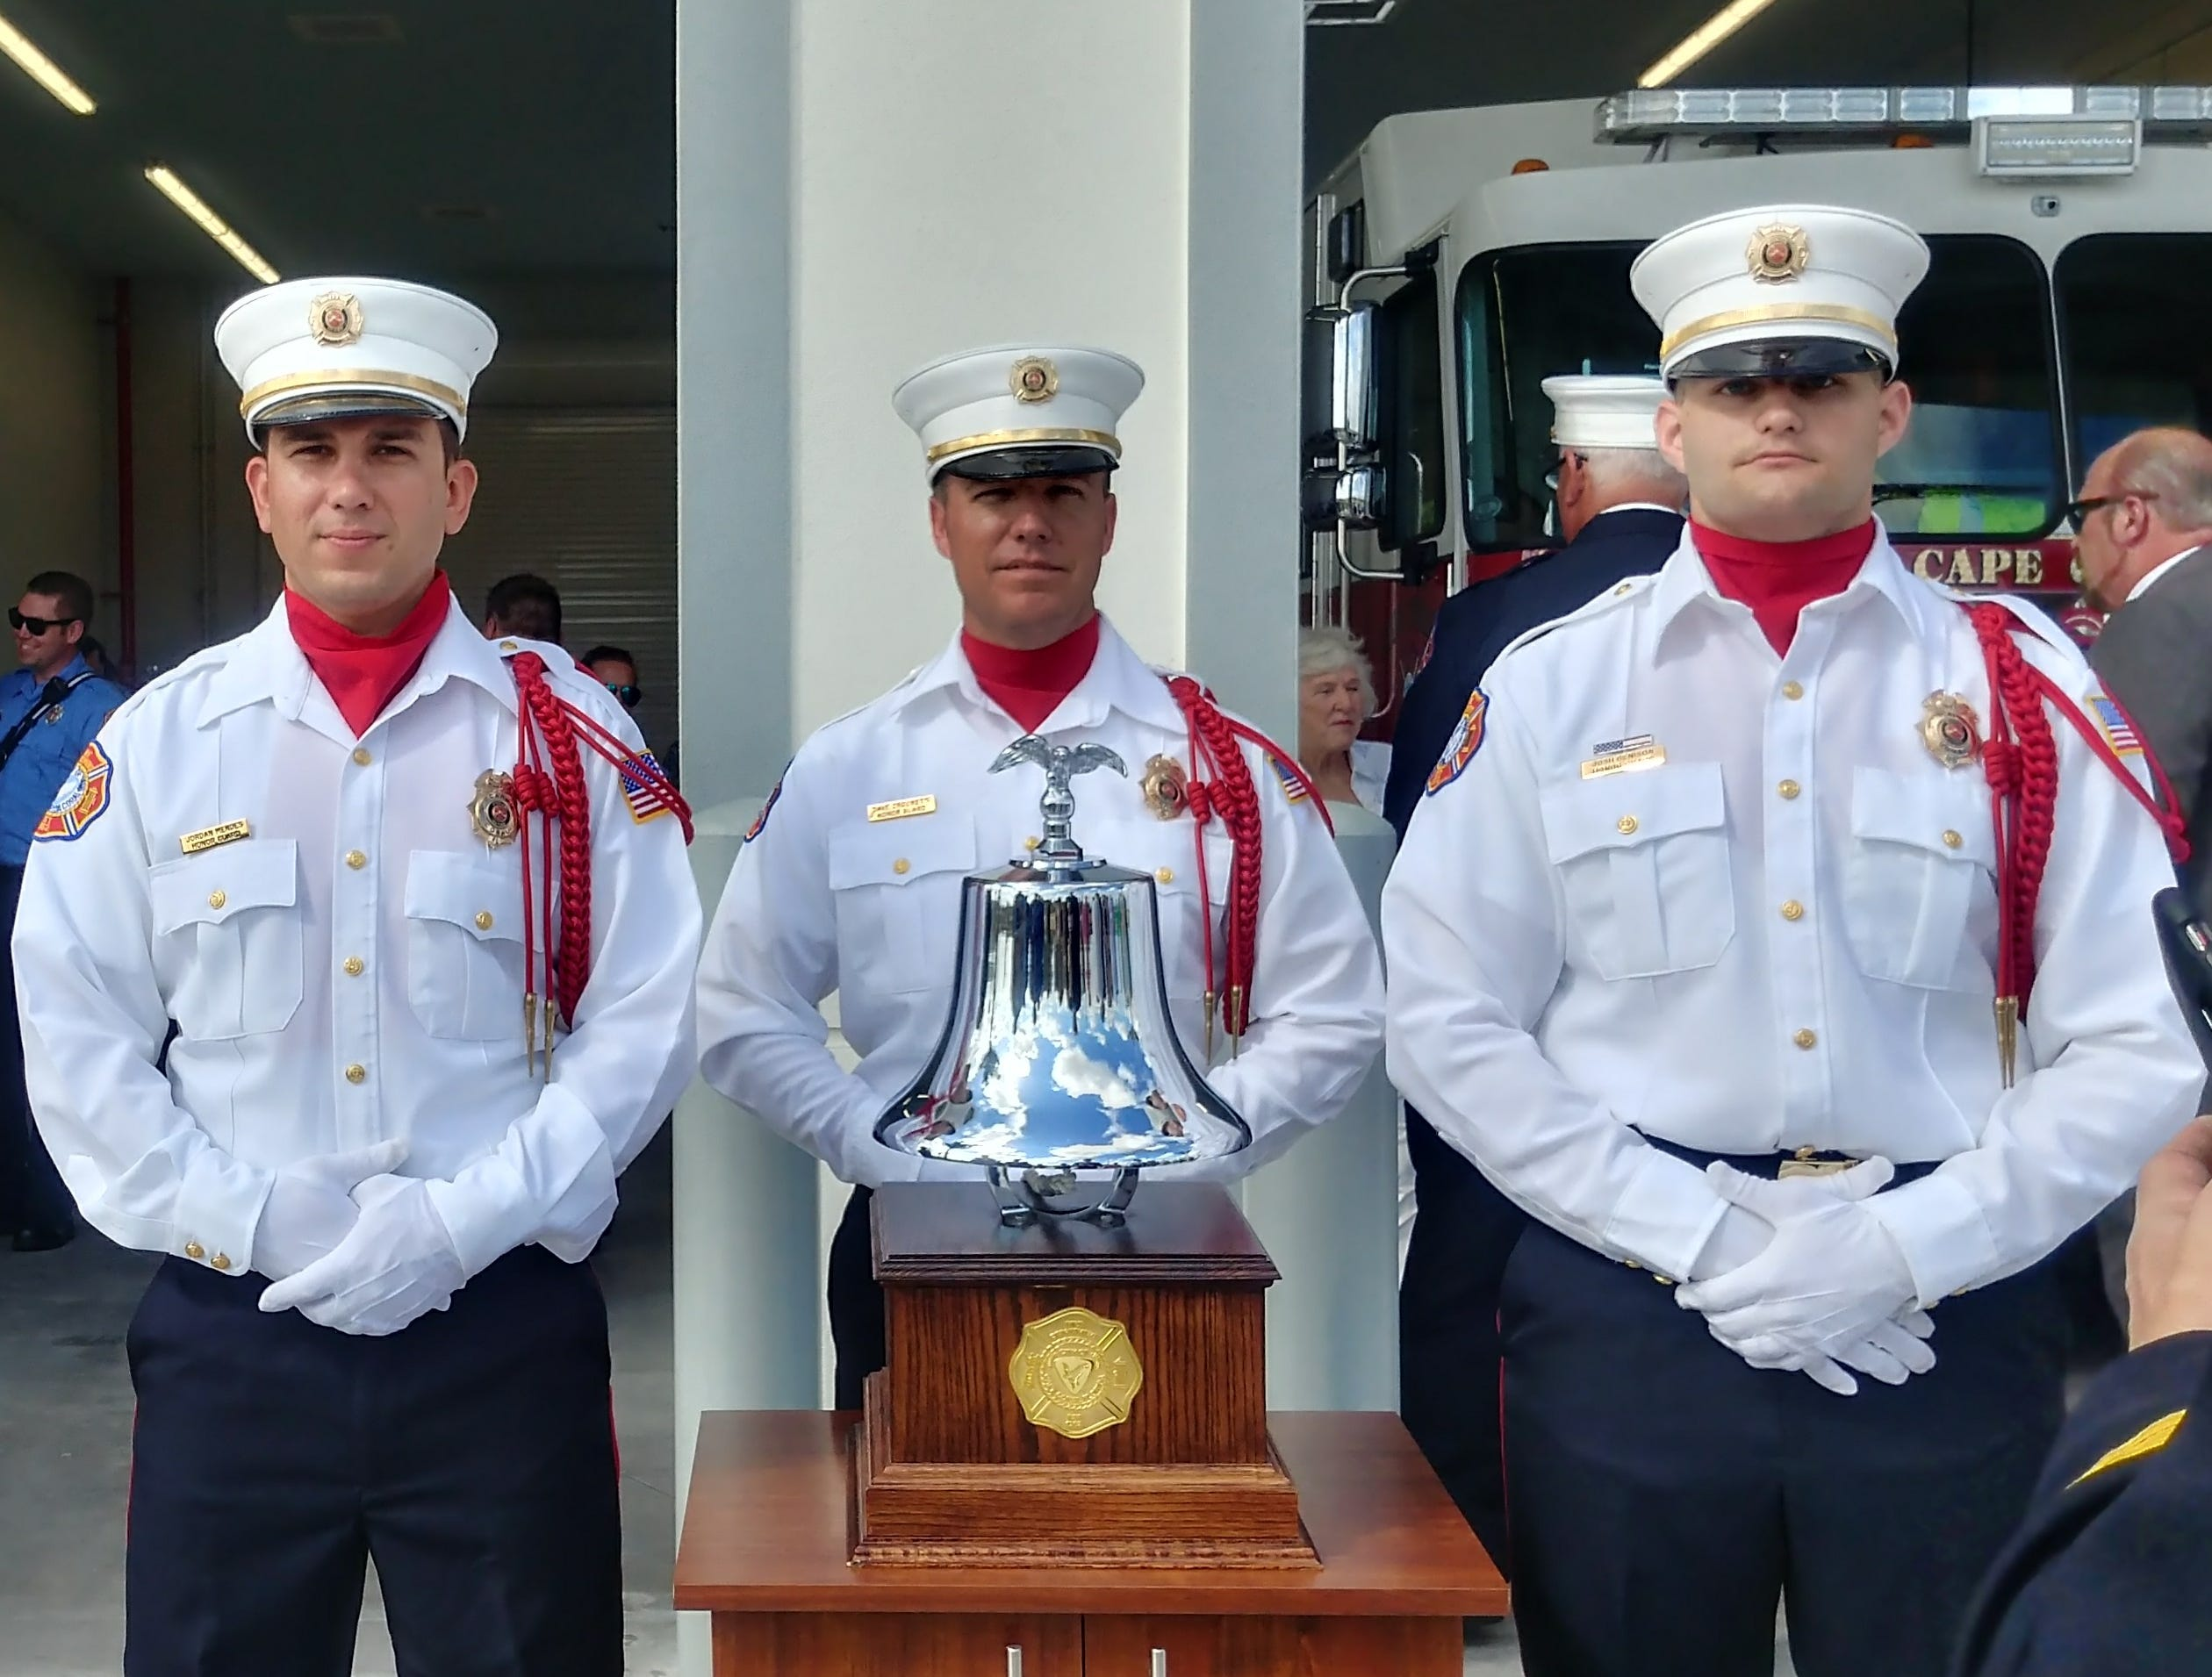 The bell rang during teh opening ceremonies for Cape Coral Fire Department's Station 11 on Burnt Store Road on Wednesday.